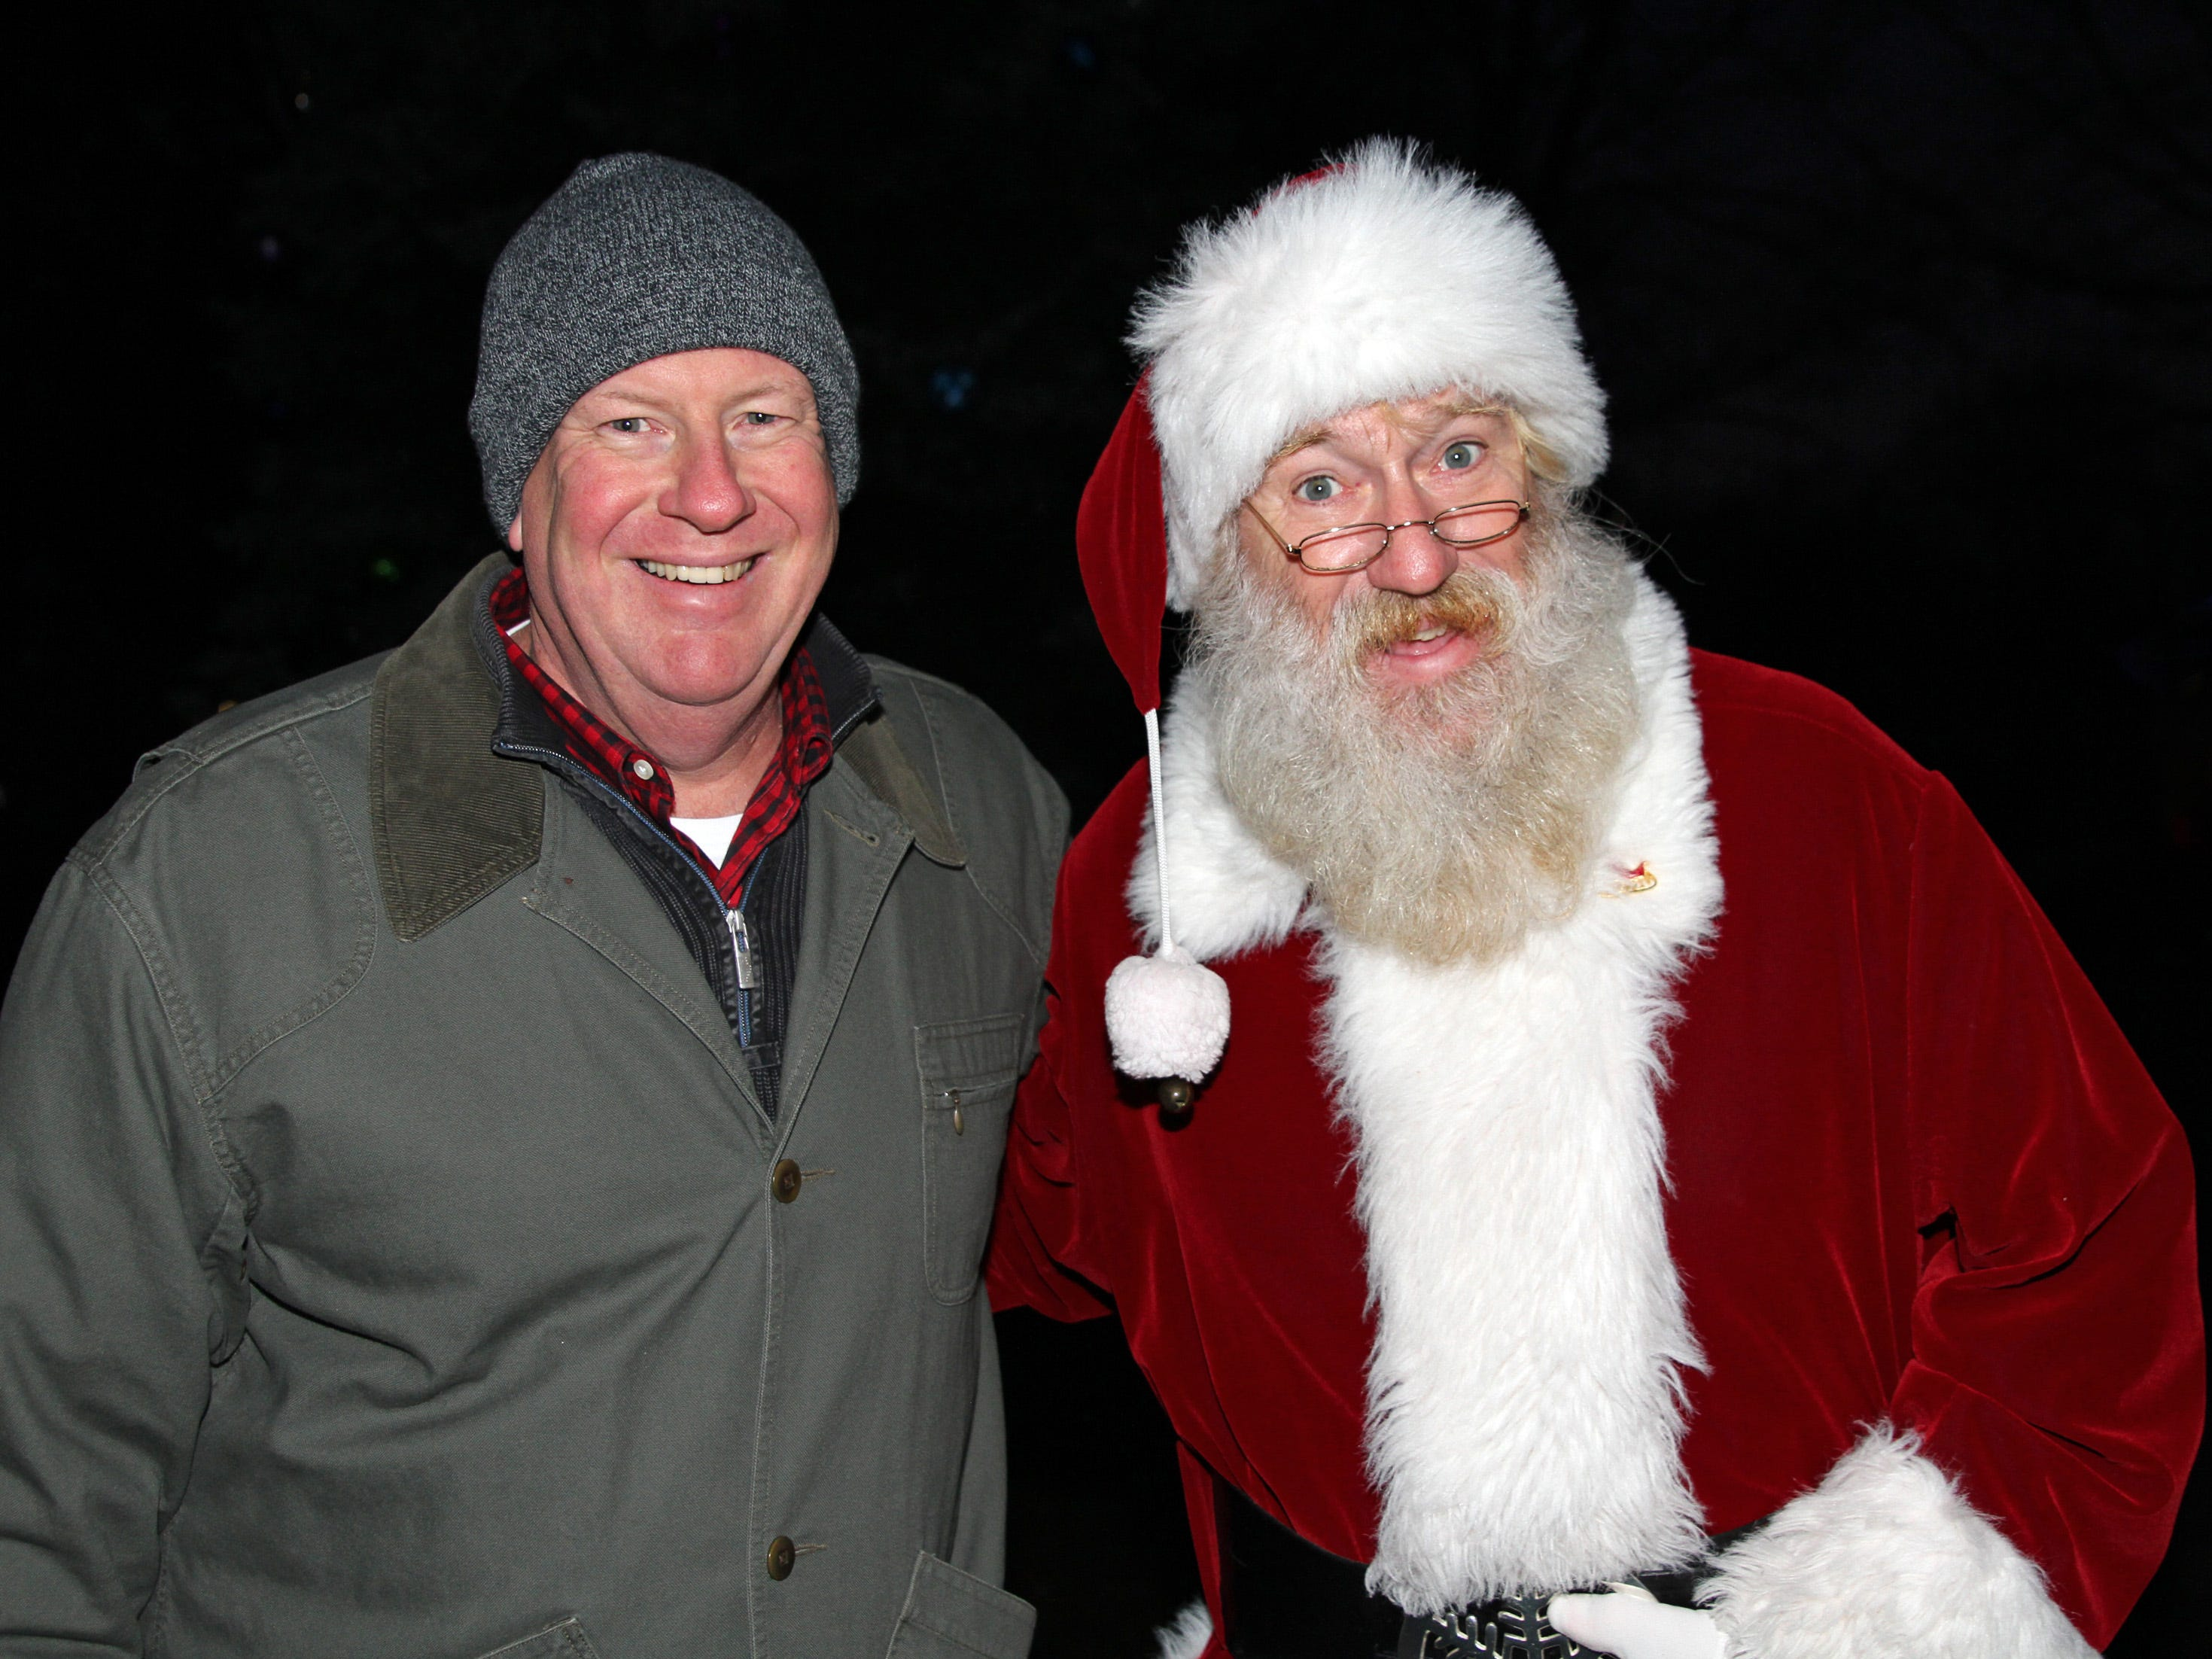 Urbandale Mayor Bob Andeweg and Santa are ready to light the official tree during UCAN's third annual Light Up Urbandale on Sunday, Dec. 2, 2018 at Lions Park in Urbandale. Holiday festivities included a visit from Santa, crafts, goodies, official tree lighting ceremony, live reindeer and entertainment.